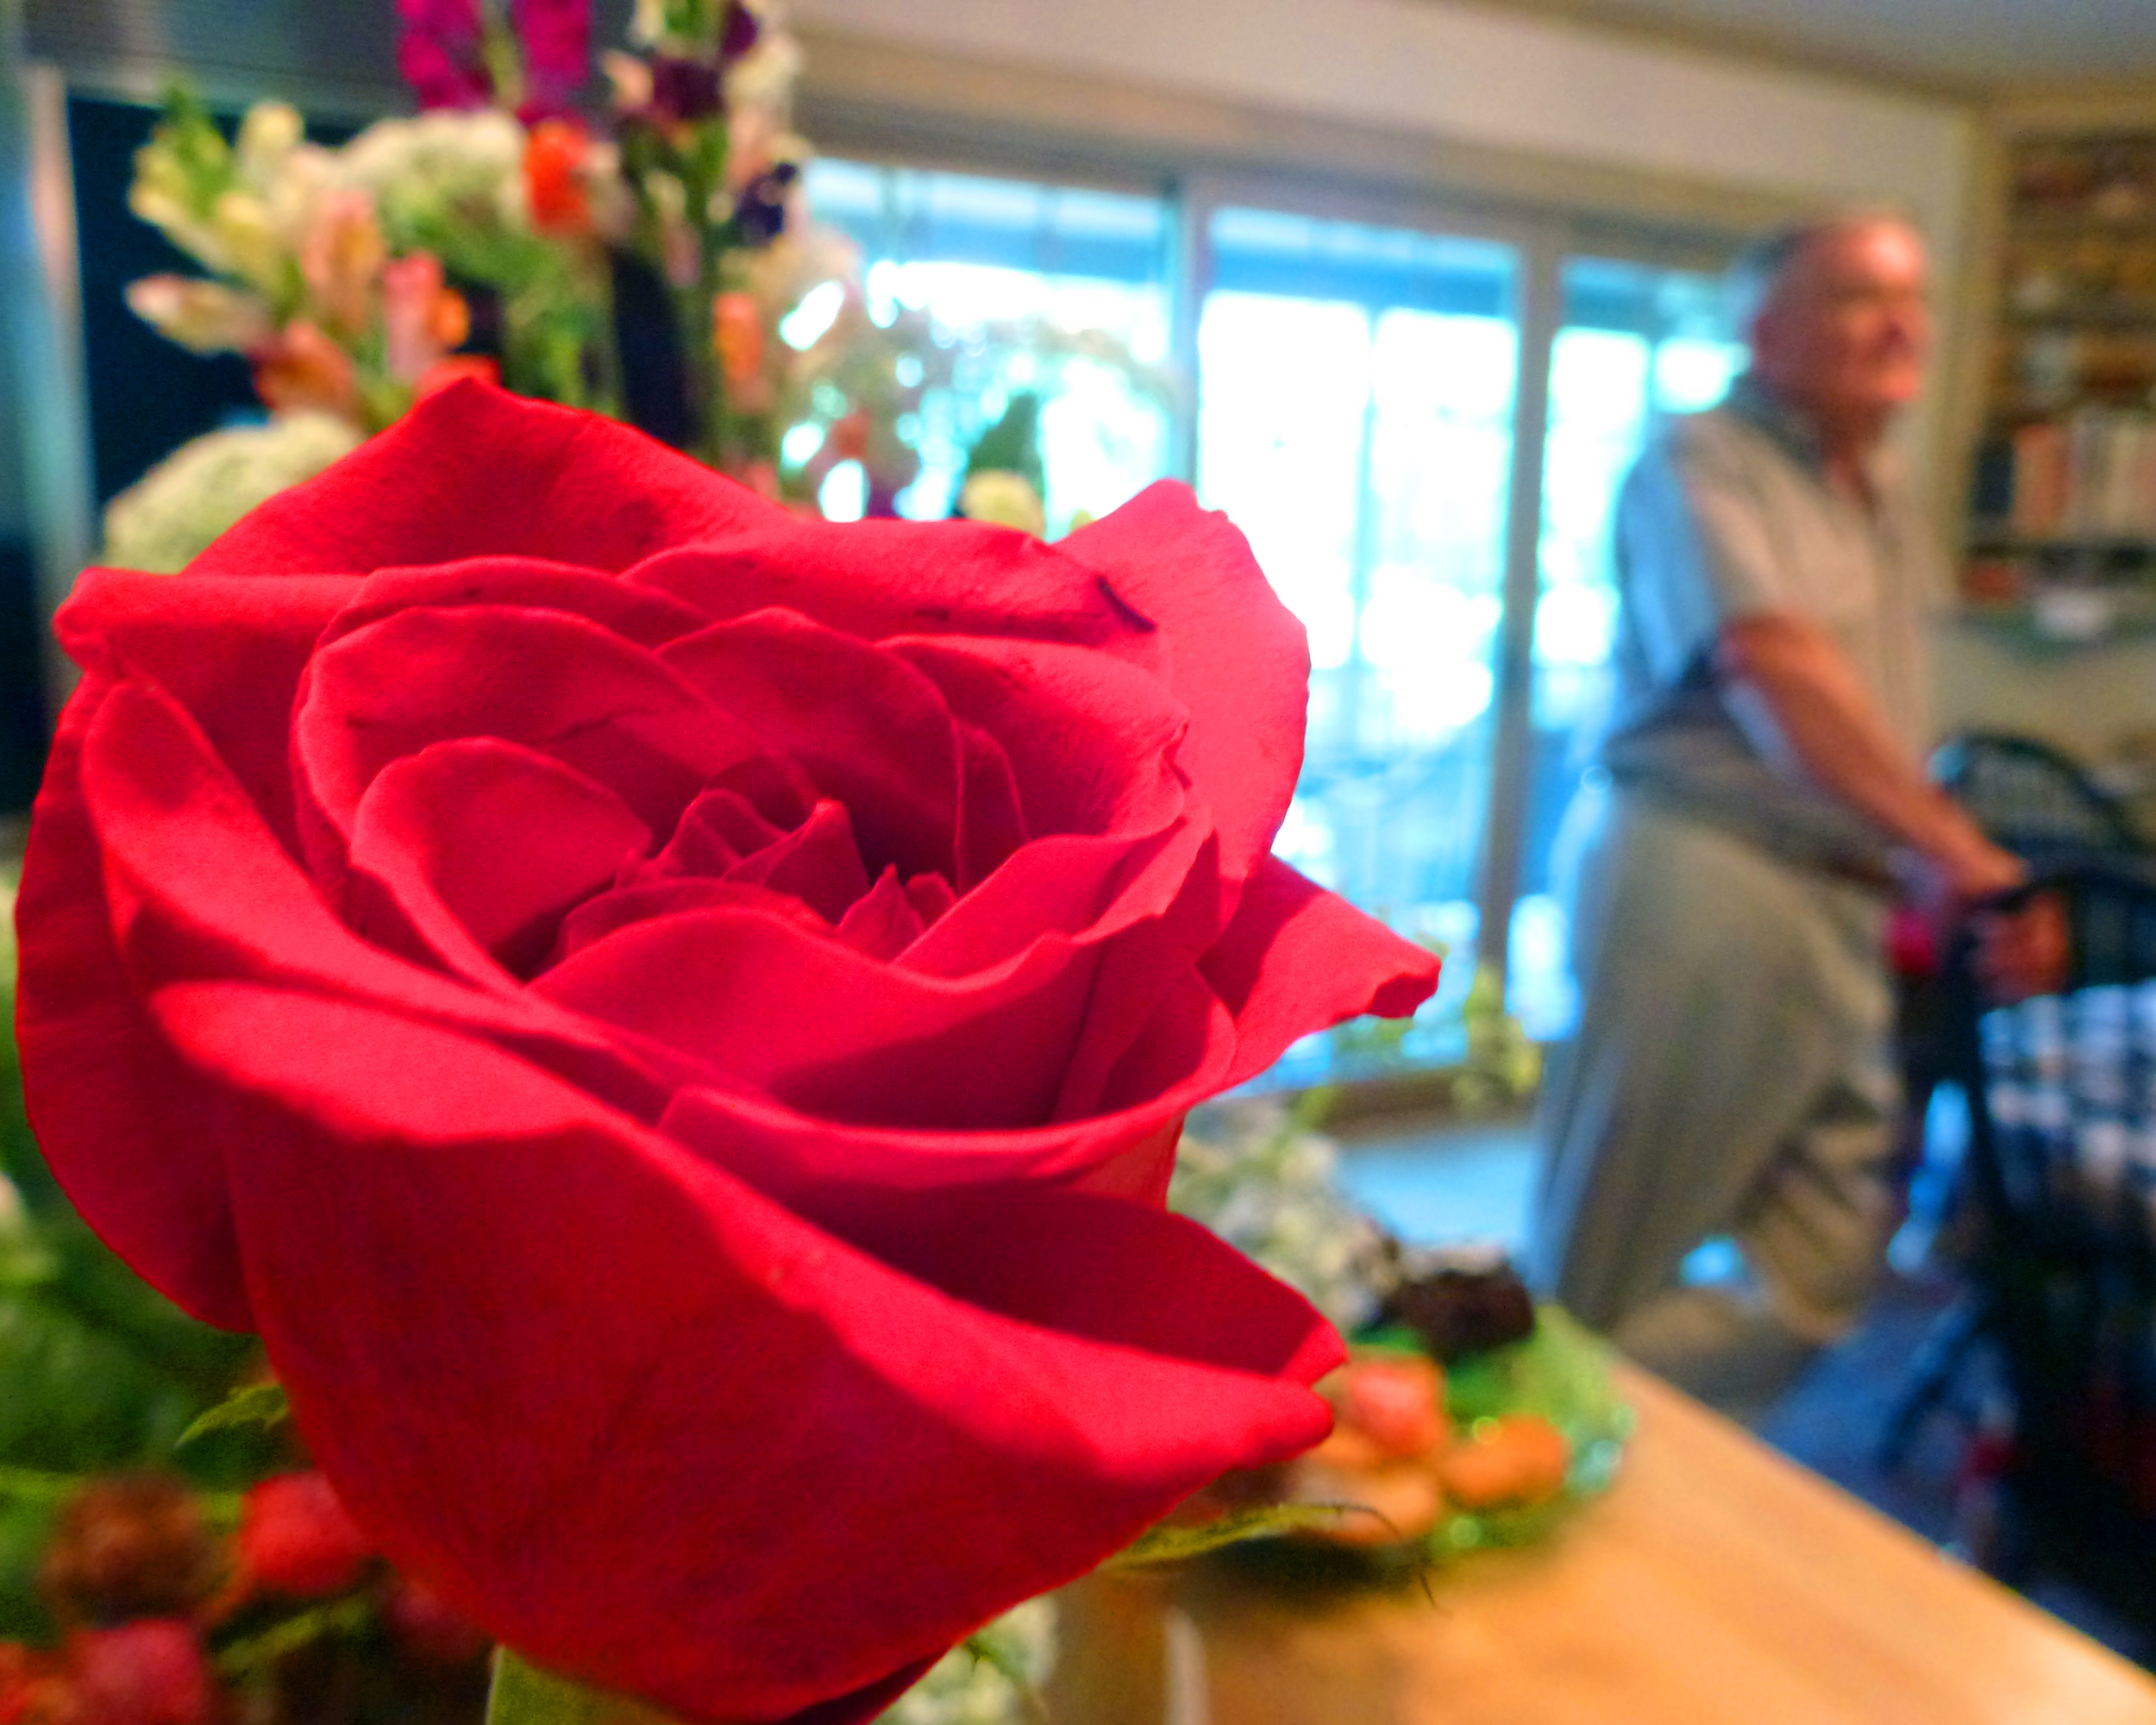 In the background Frank Huber talks about his sister, Joanne Geiger, at their farmhouse in Lancaster, Pa. Joanne was buried that morning and died four days before. In the foreground is a rose that was part of the bouquet laid on her casket.